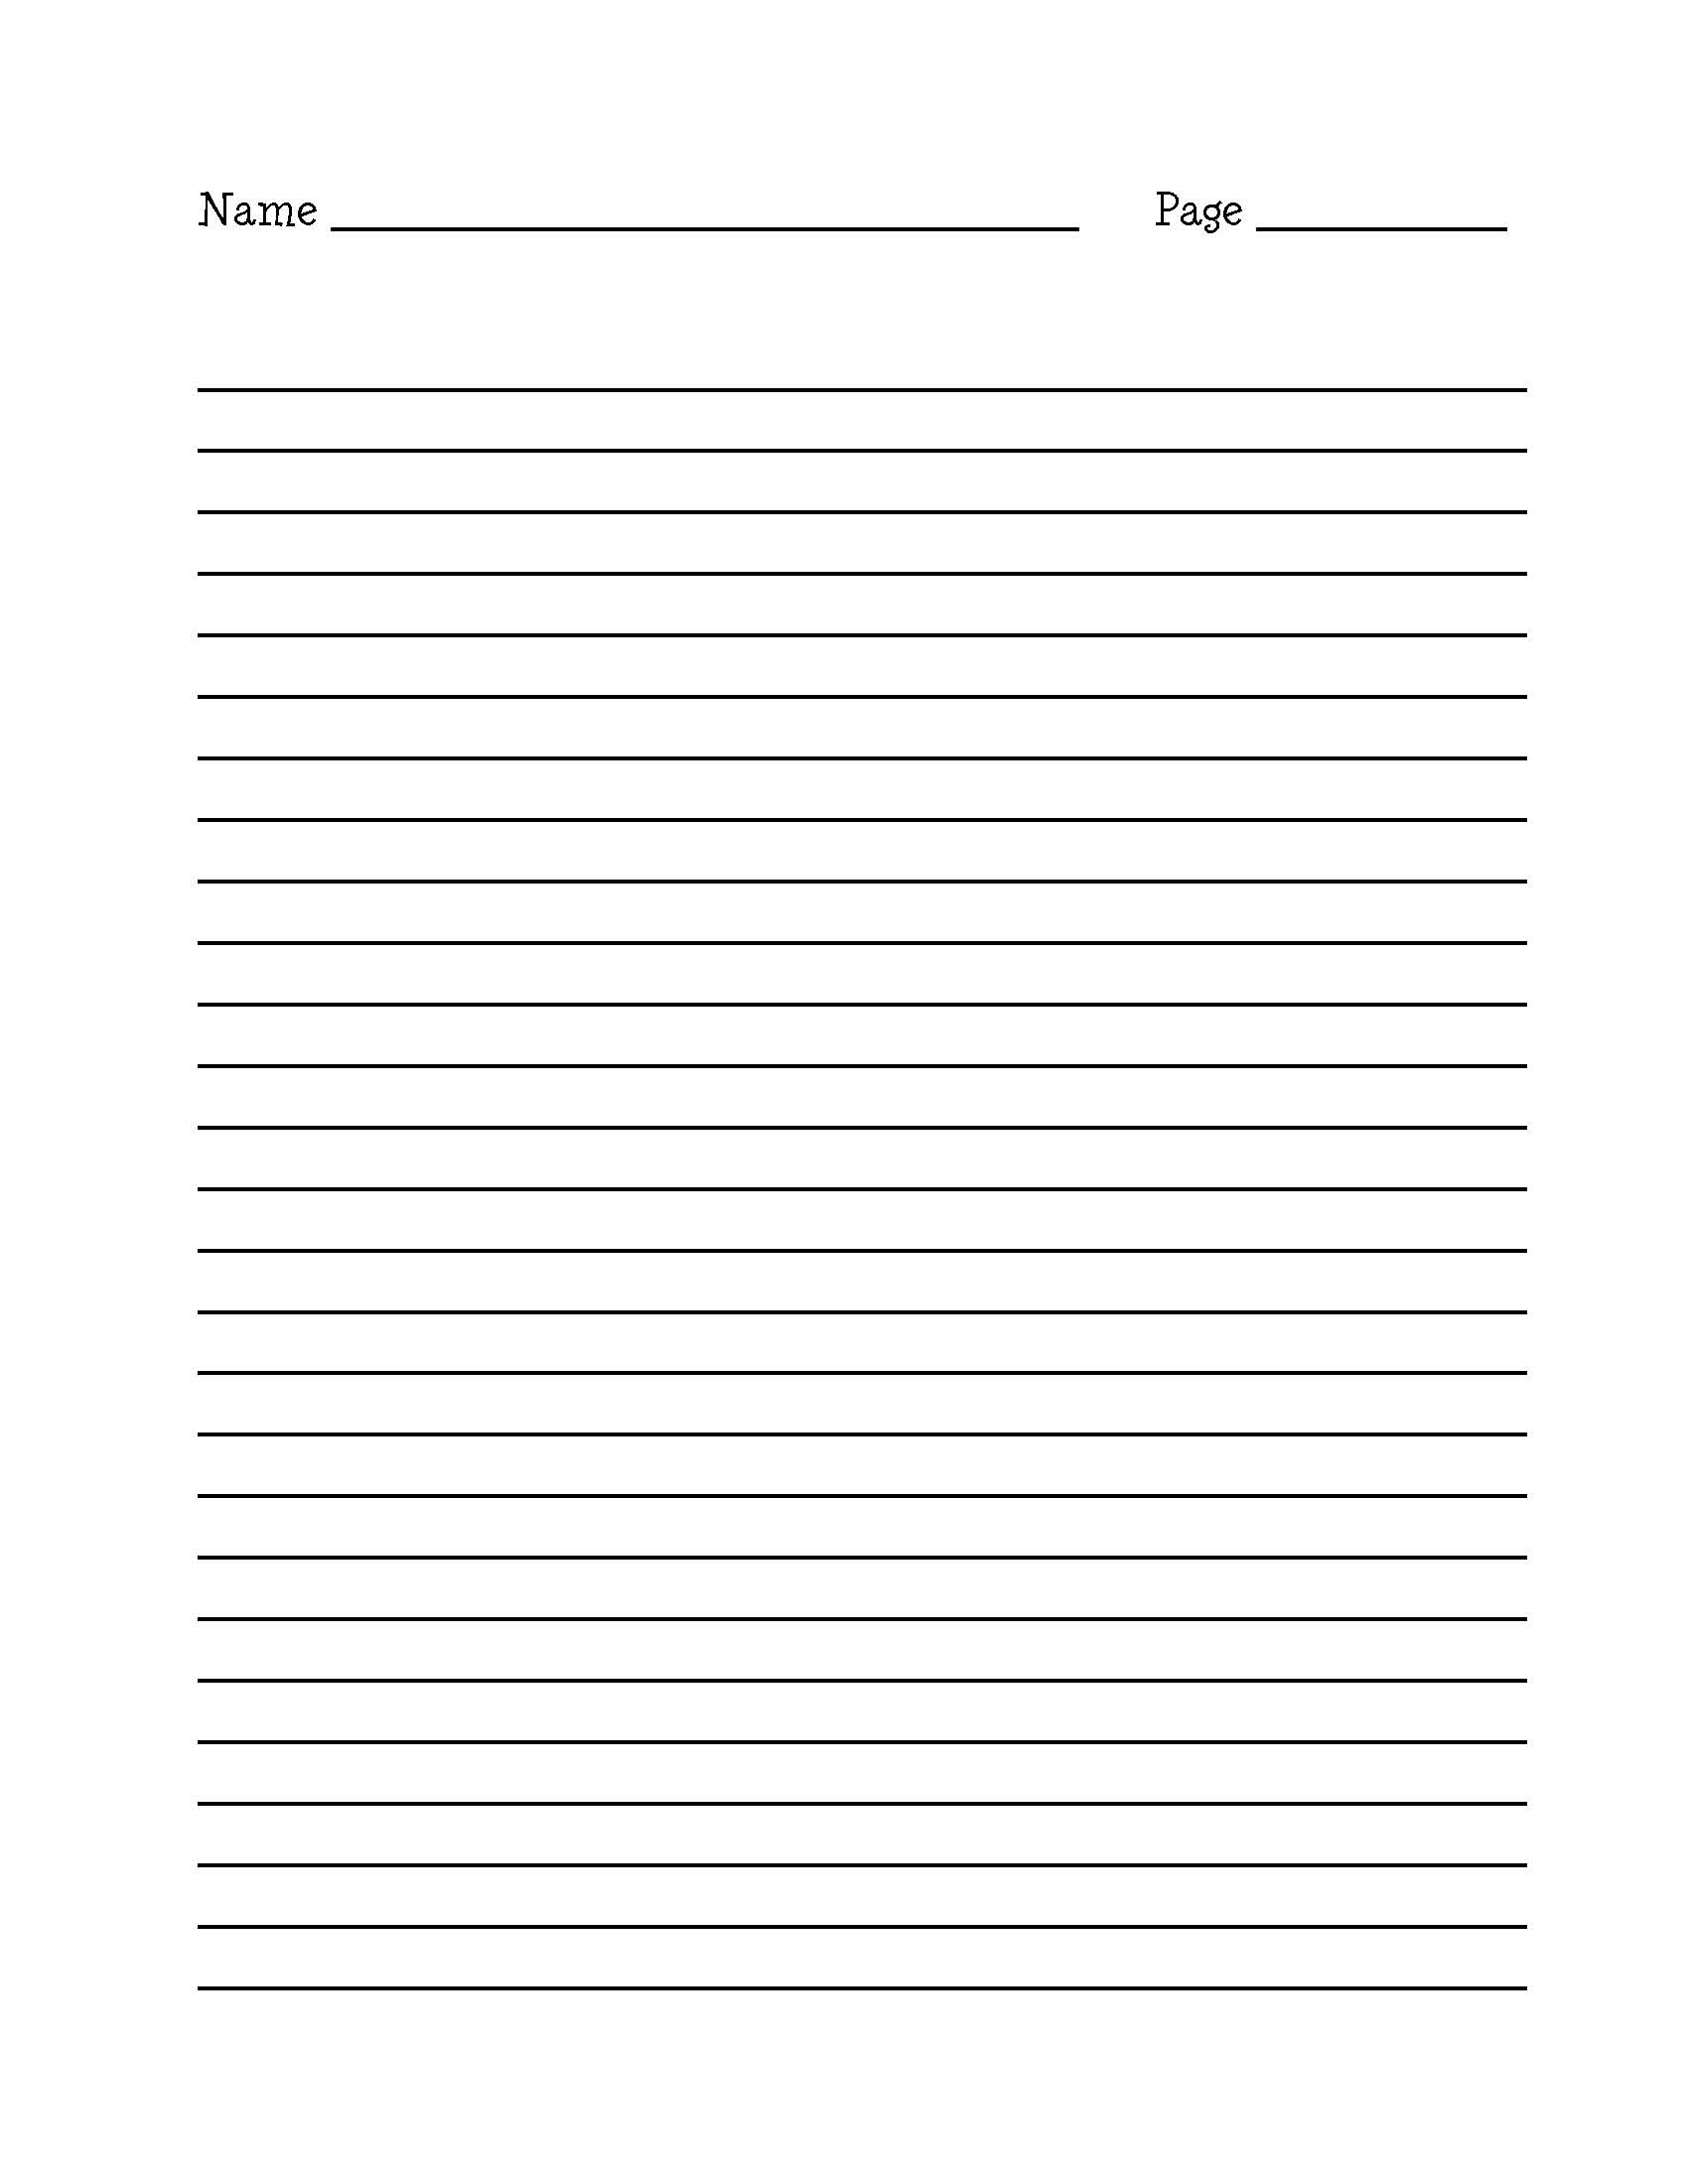 Nice School Themed Lined Writing Paper: School Themed, Lined, Writing Paper Can  Make You Love Telling You All Their Ideas And Dreams For This Very Special  Year! Regarding Lined Pages For Writing